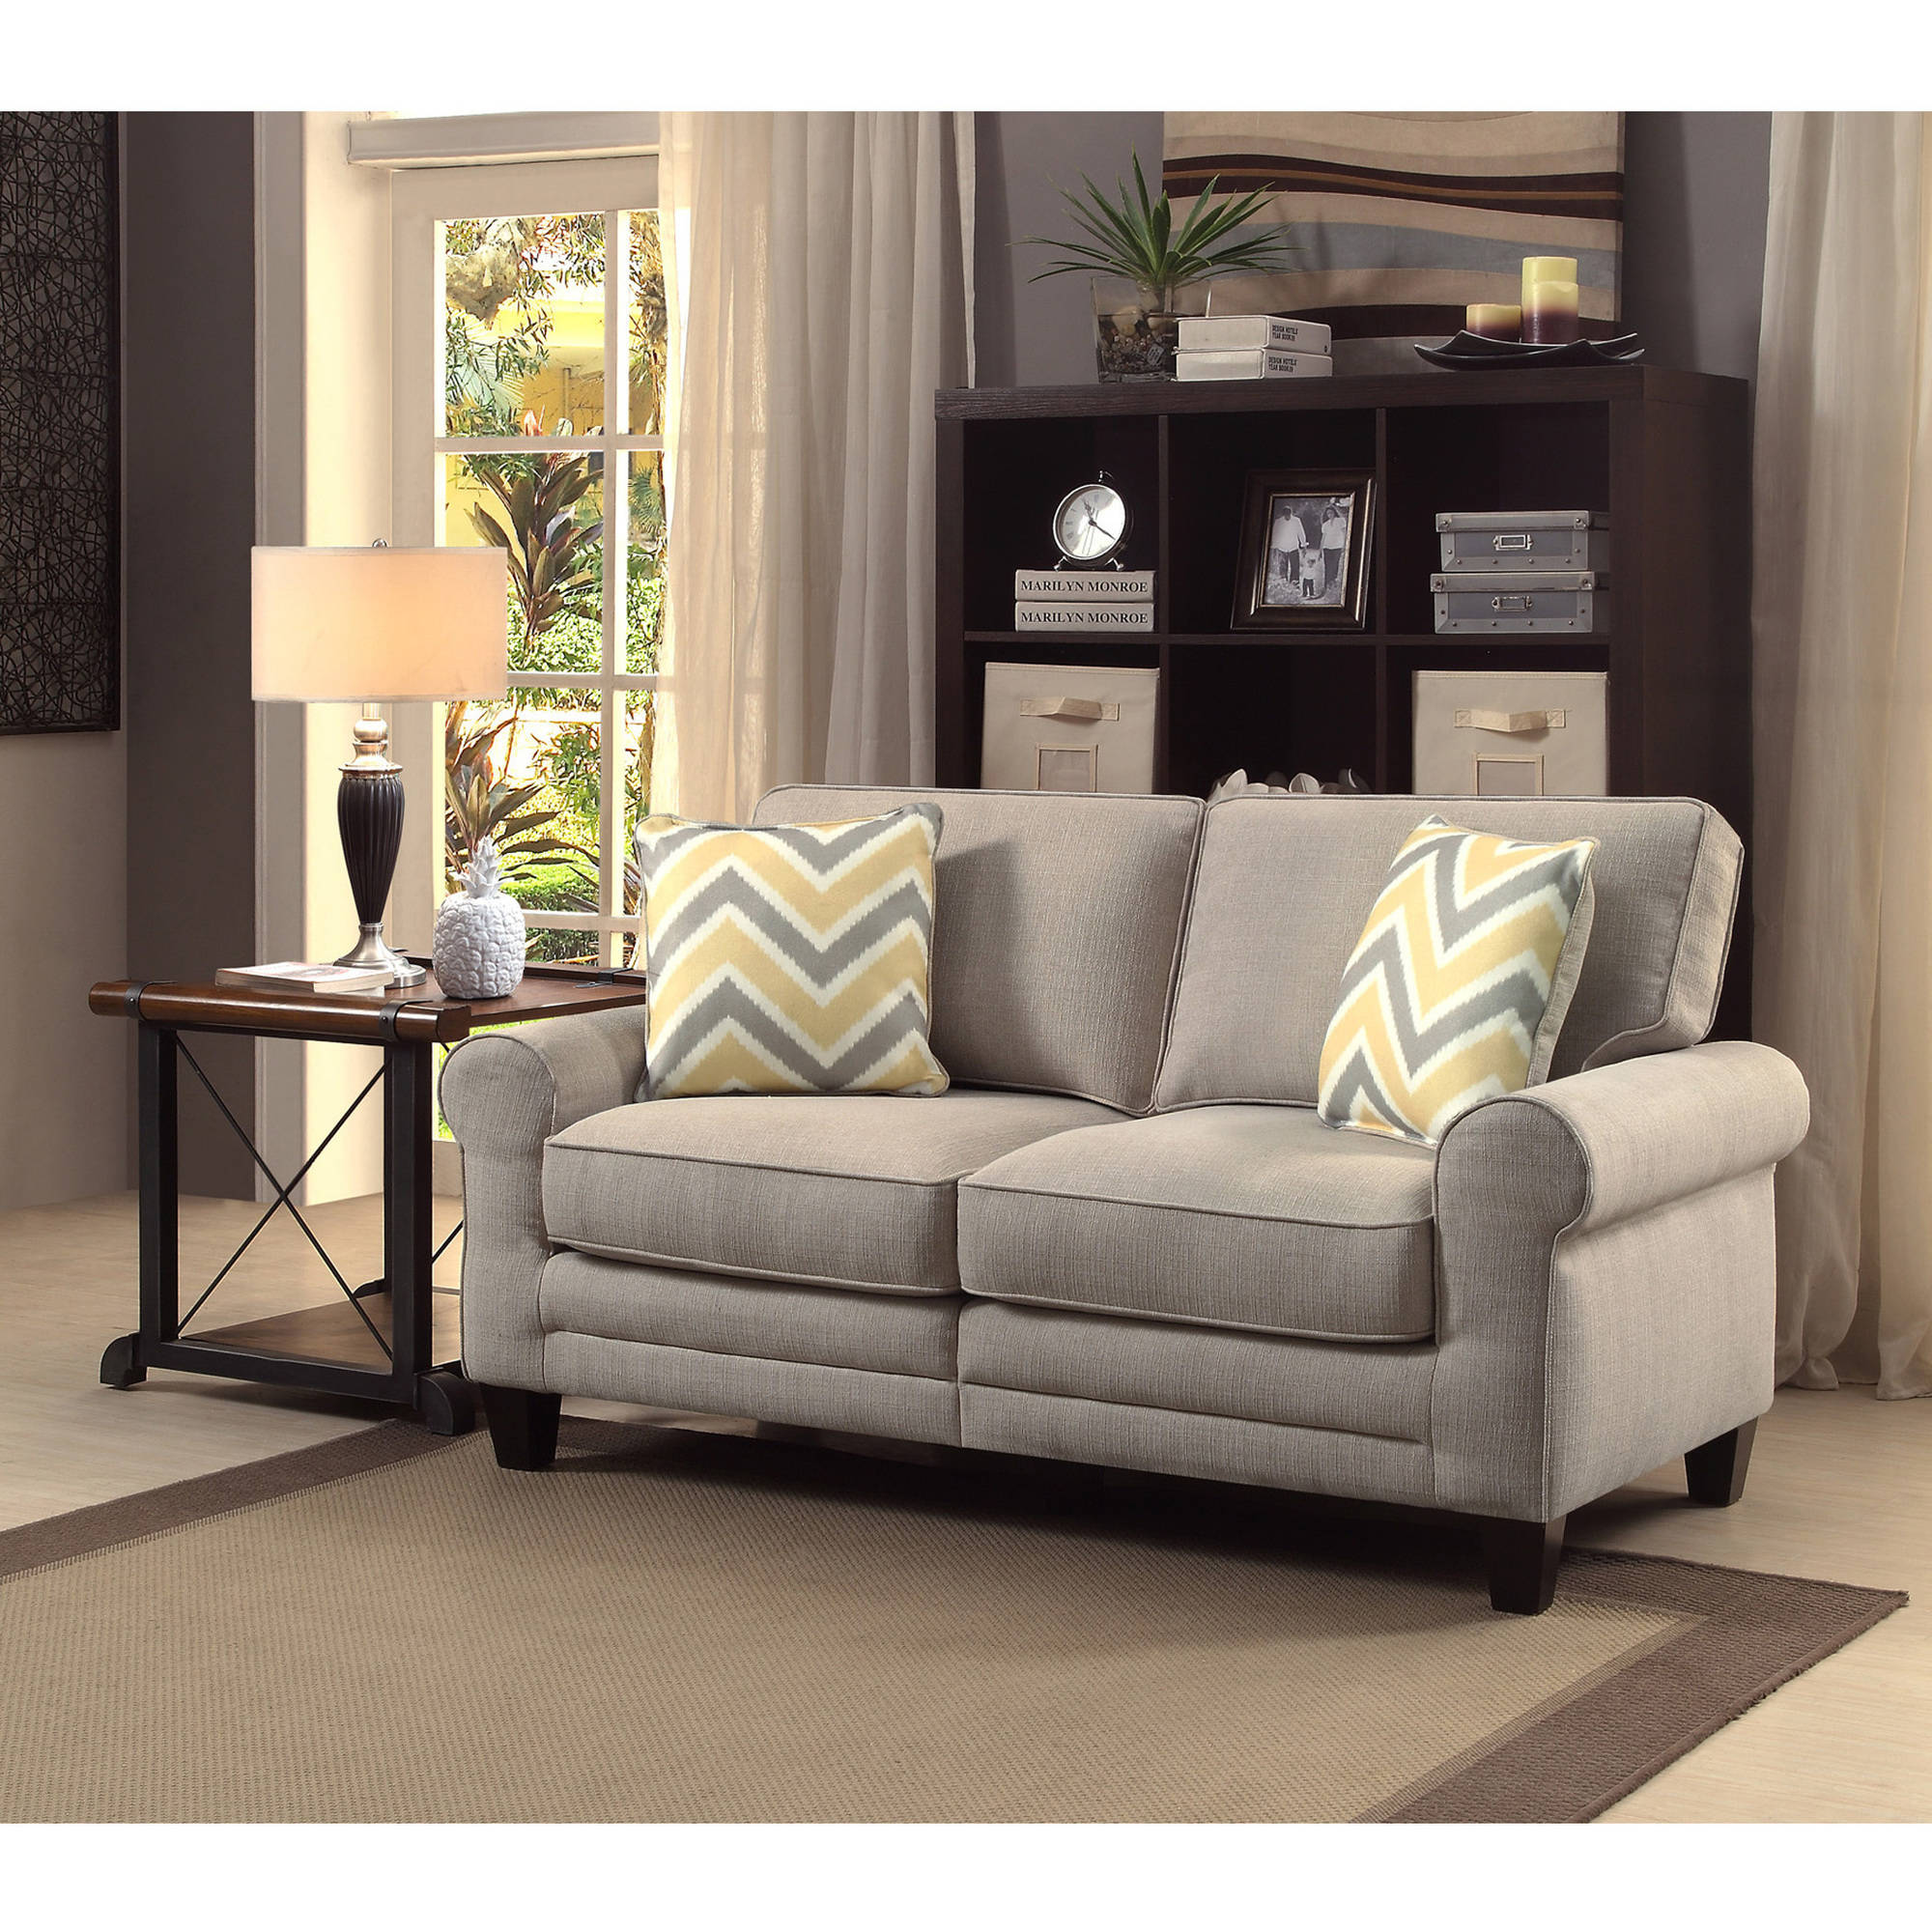 "Serta RTA Copenhagen Collection 61"" Loveseat, Multiple Colors"